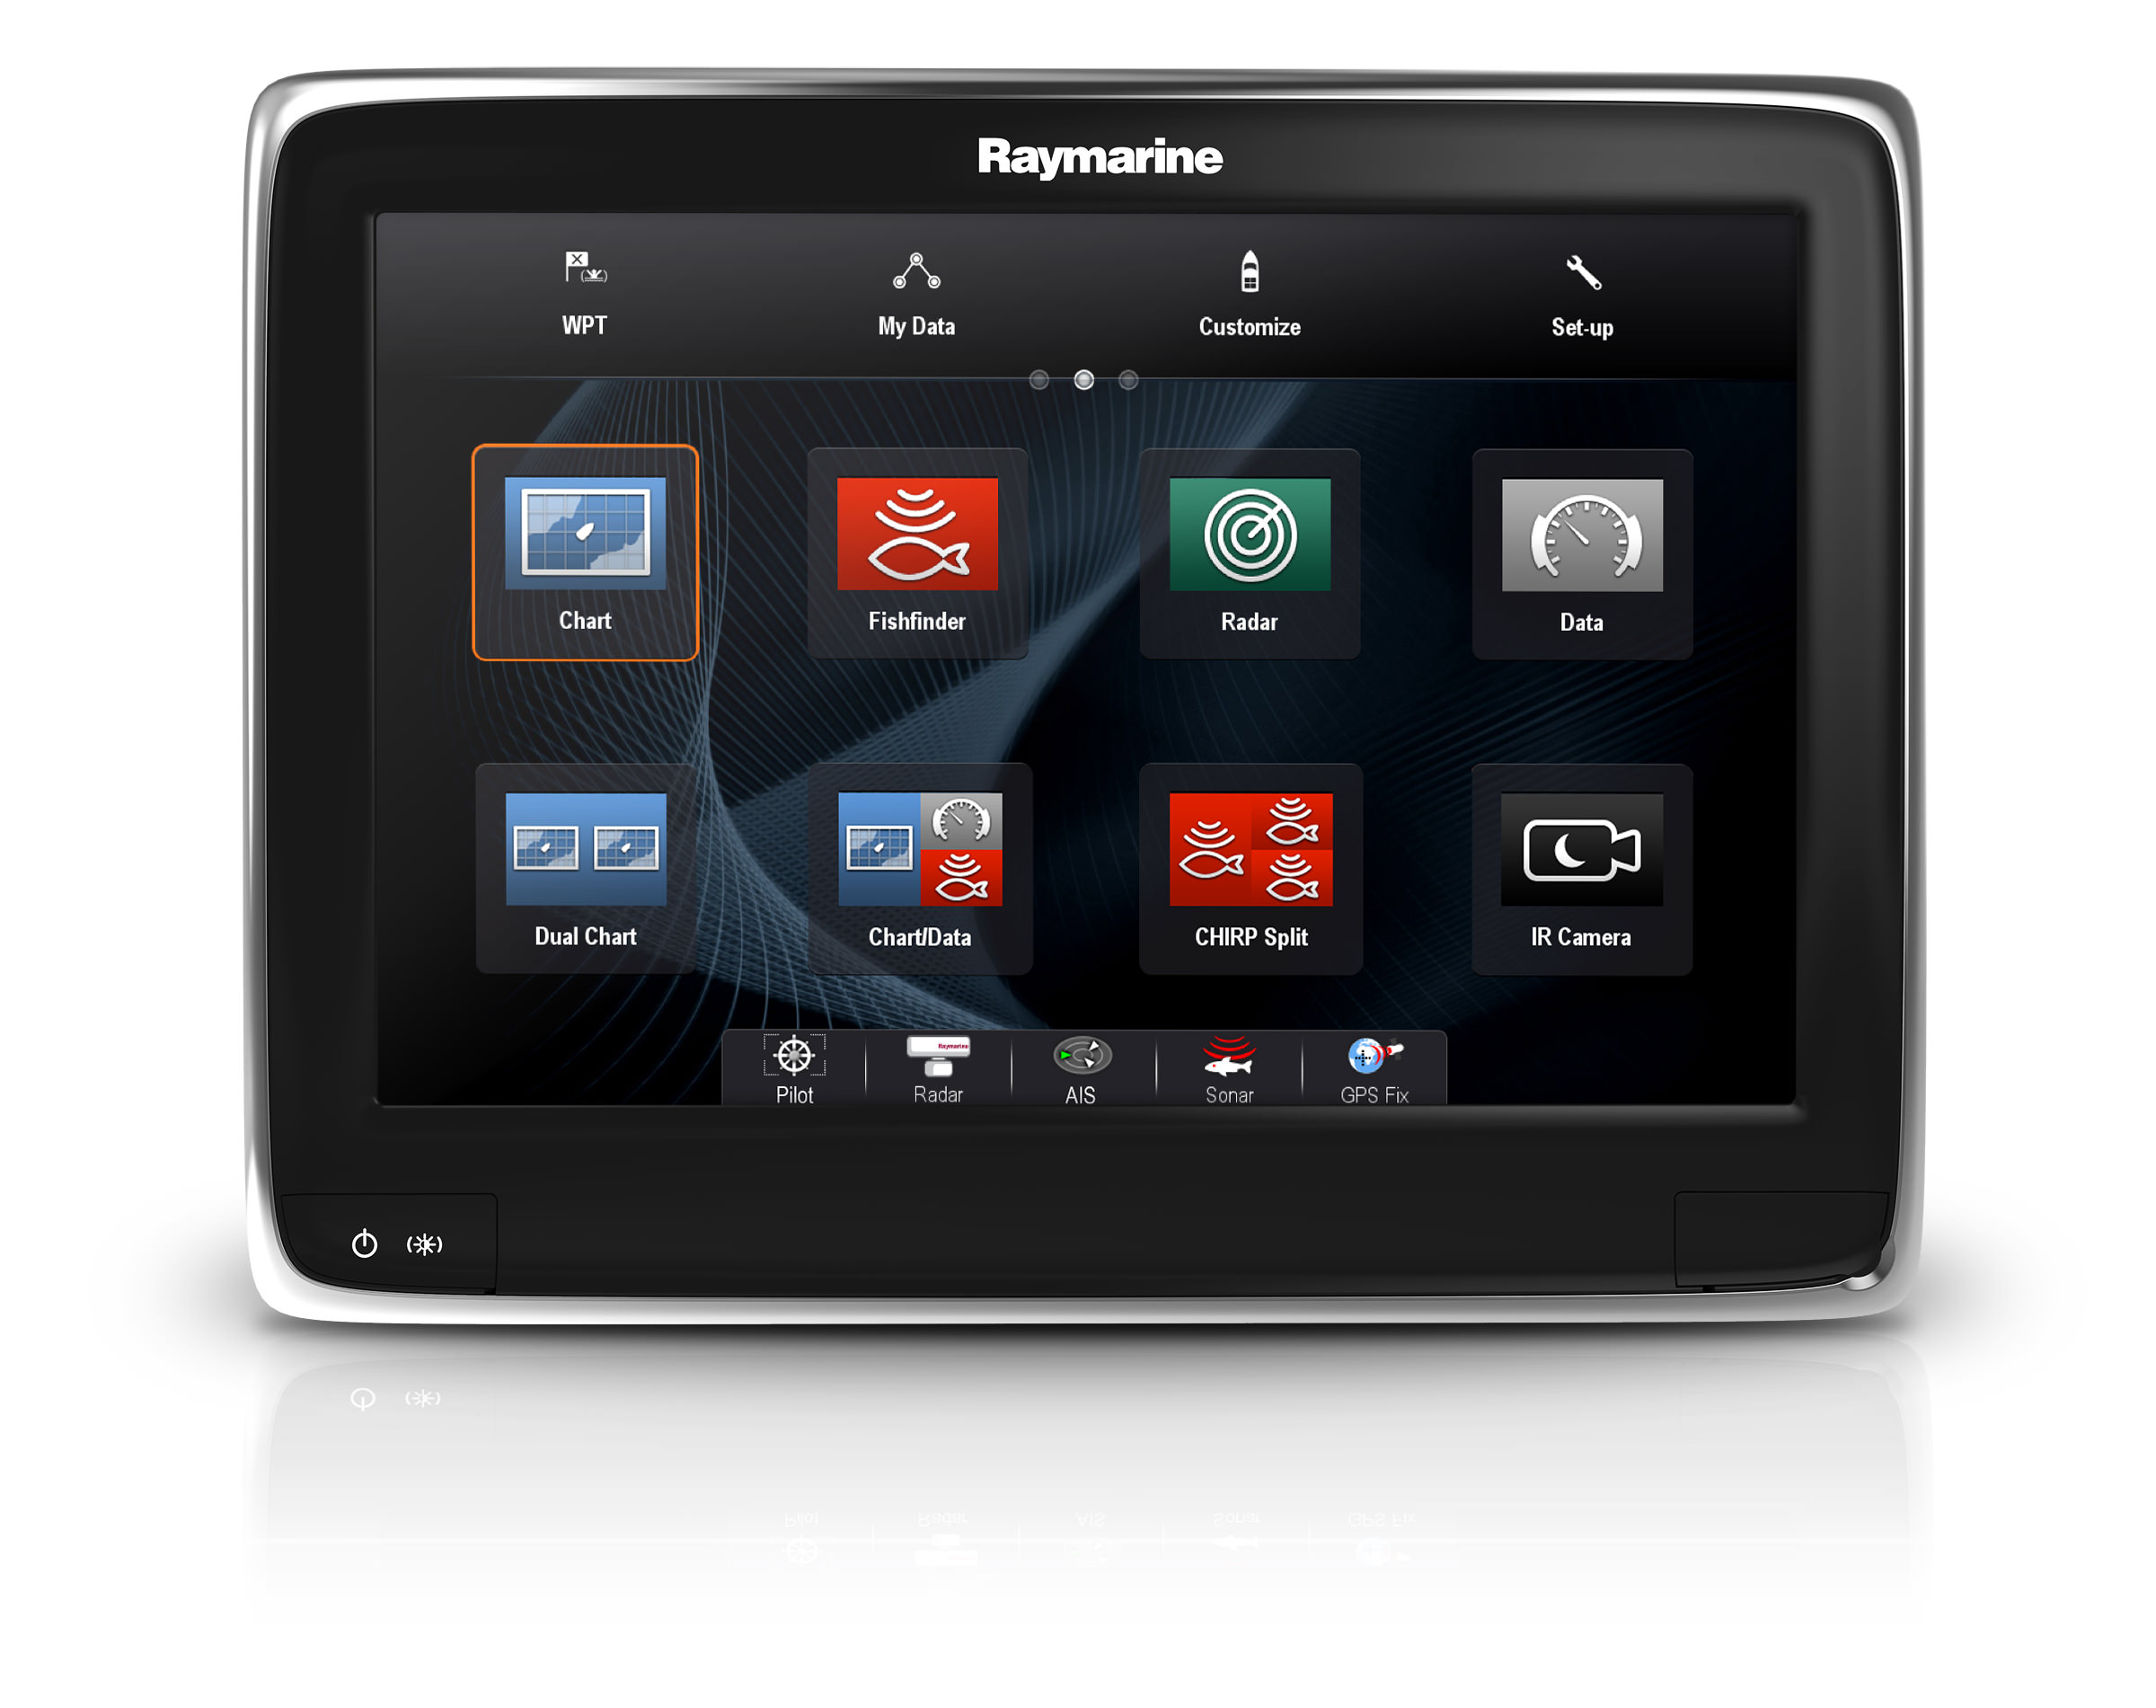 raymarine gps traceur s rie a tactile wifi. Black Bedroom Furniture Sets. Home Design Ideas